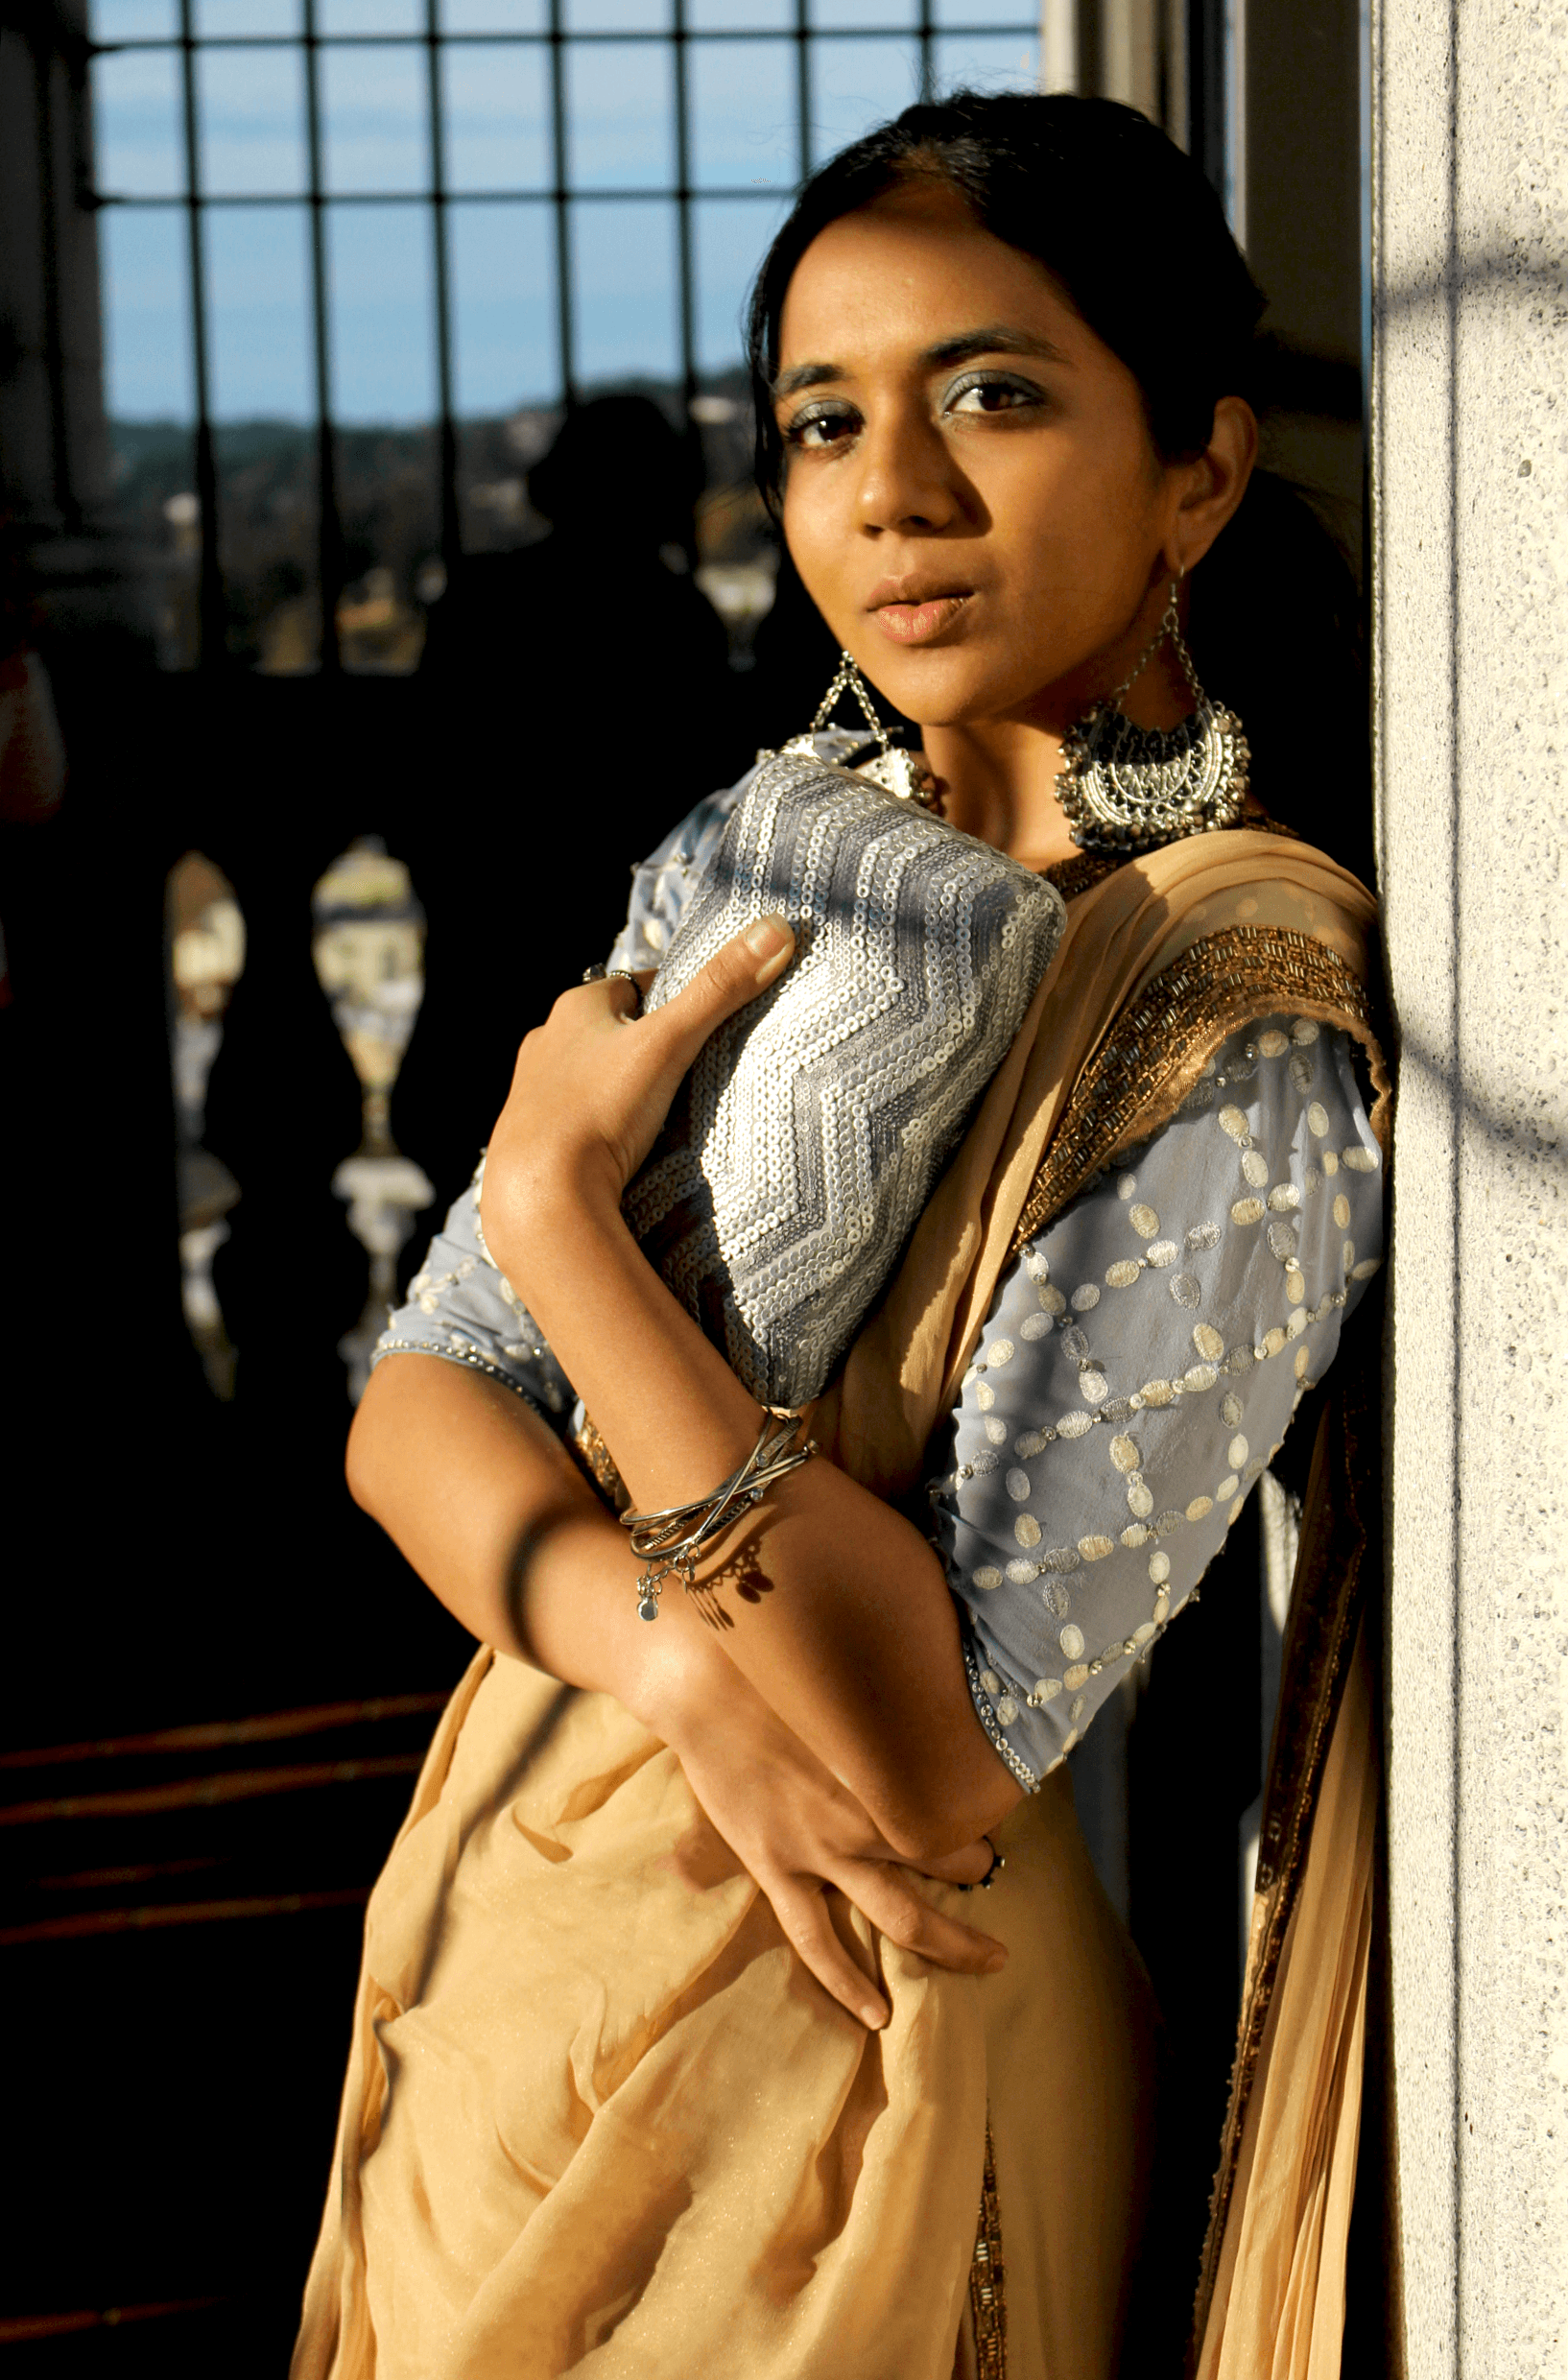 ABOUT NAMRATA - A globetrotting Indian who migrated to San Francisco – first as a graduate student in fashion journalism at the Academy of Art University, then content producer for my own Instagram. I decided to stay back in the Bay Area with the aim of launching a business in the contemporary Indian fashion space. What started as a magazine for my thesis, evolved into a first-of-its-kind online store with a strong social media footprint. During this time, I realized that what mattered to me most was putting Indian fashion on the global map - by documenting what goes on in my artistic playground as creatively and journalistically as I can.Other than that, a few things I could chat endlessly about : House music, Casey Neistat, Harry Potter, Elon Musk, existentialism, poetry, meteor showers, and the Internet of Things.